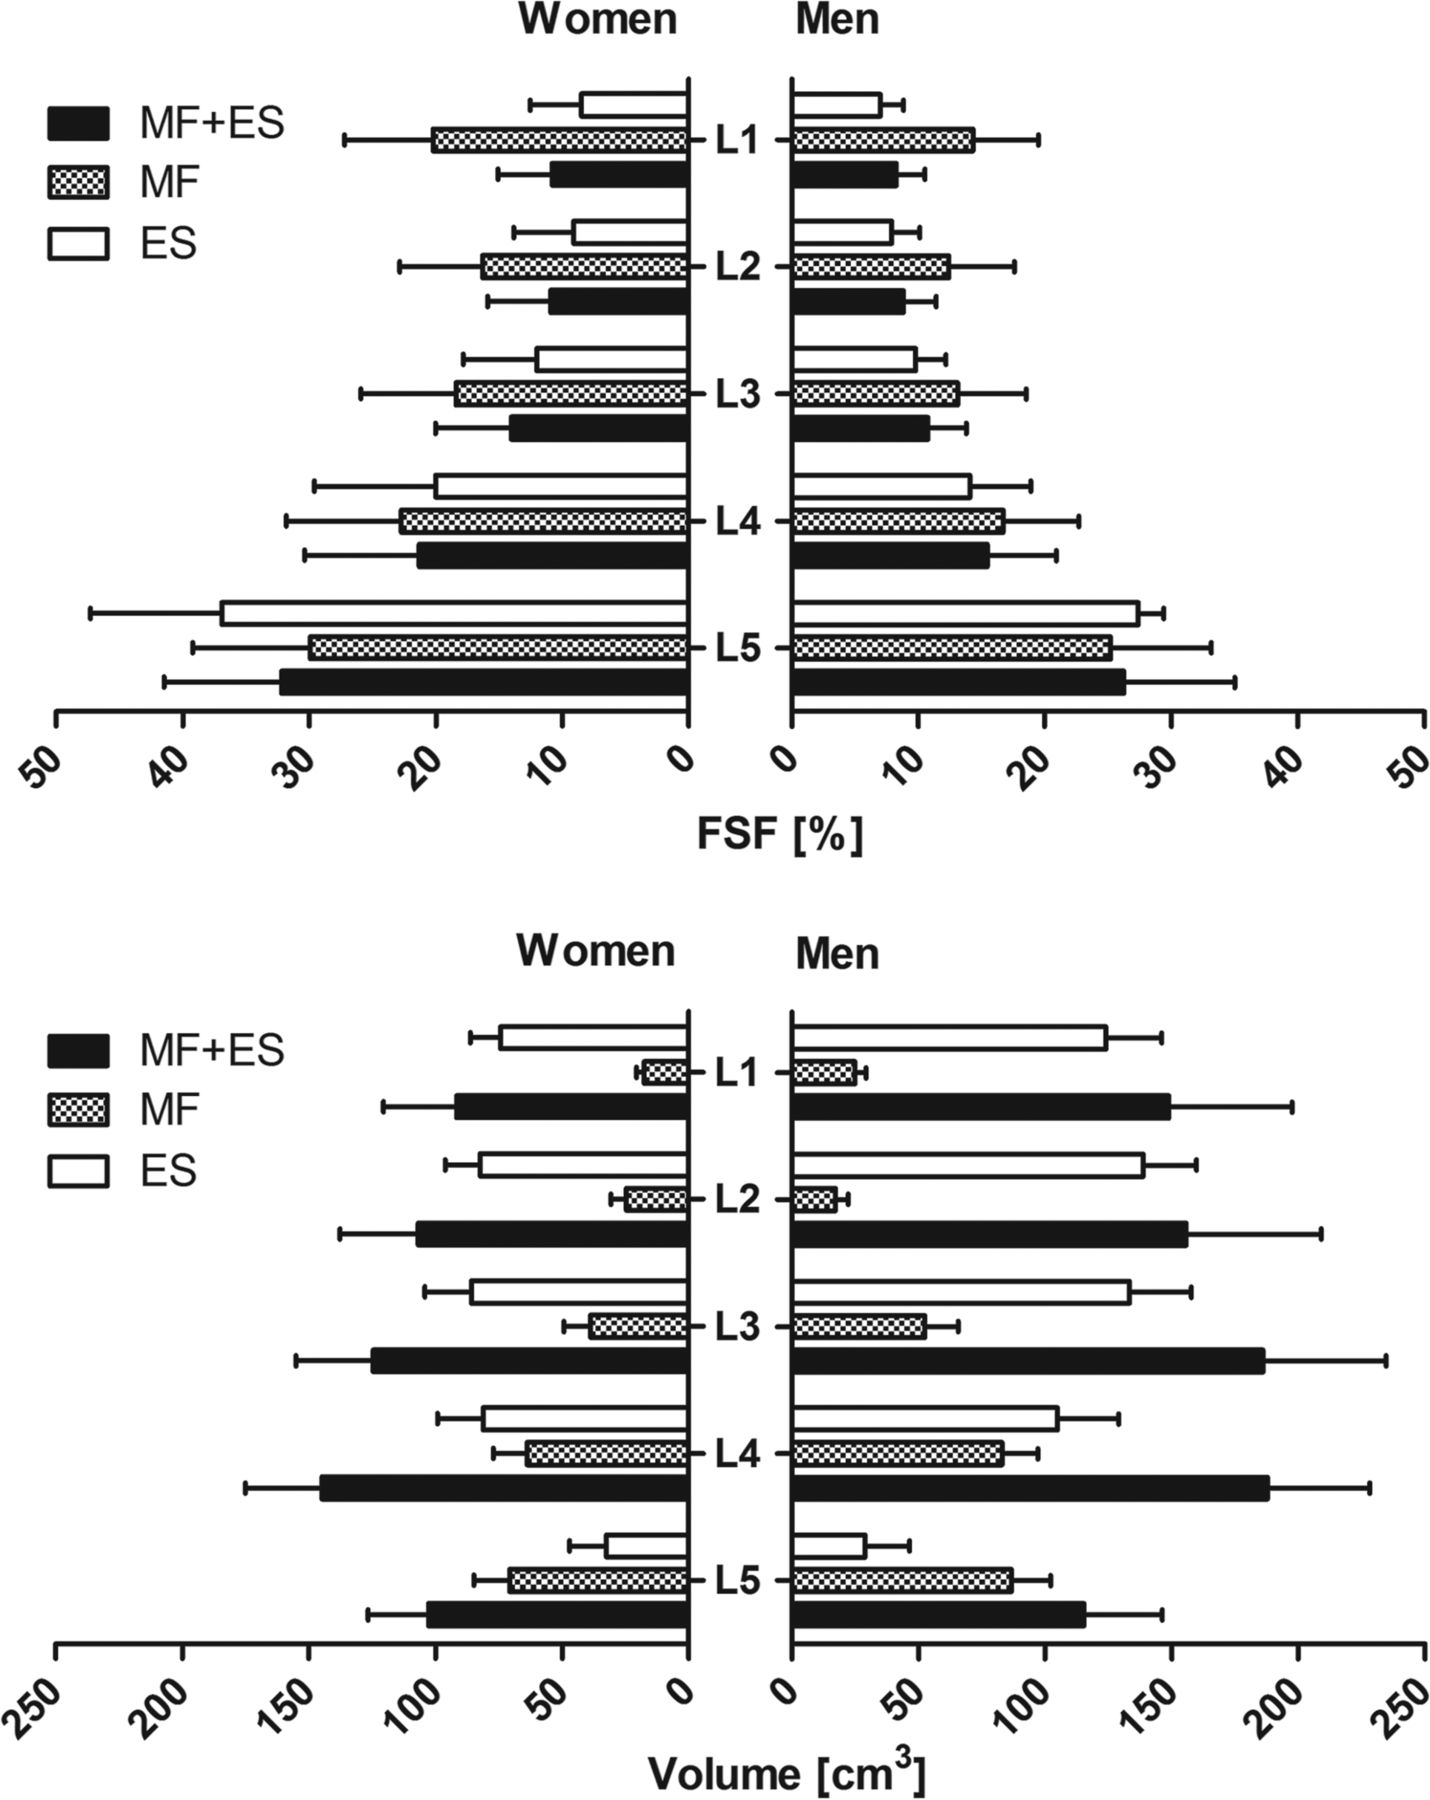 Age- and Level-Dependence of Fatty Infiltration in Lumbar